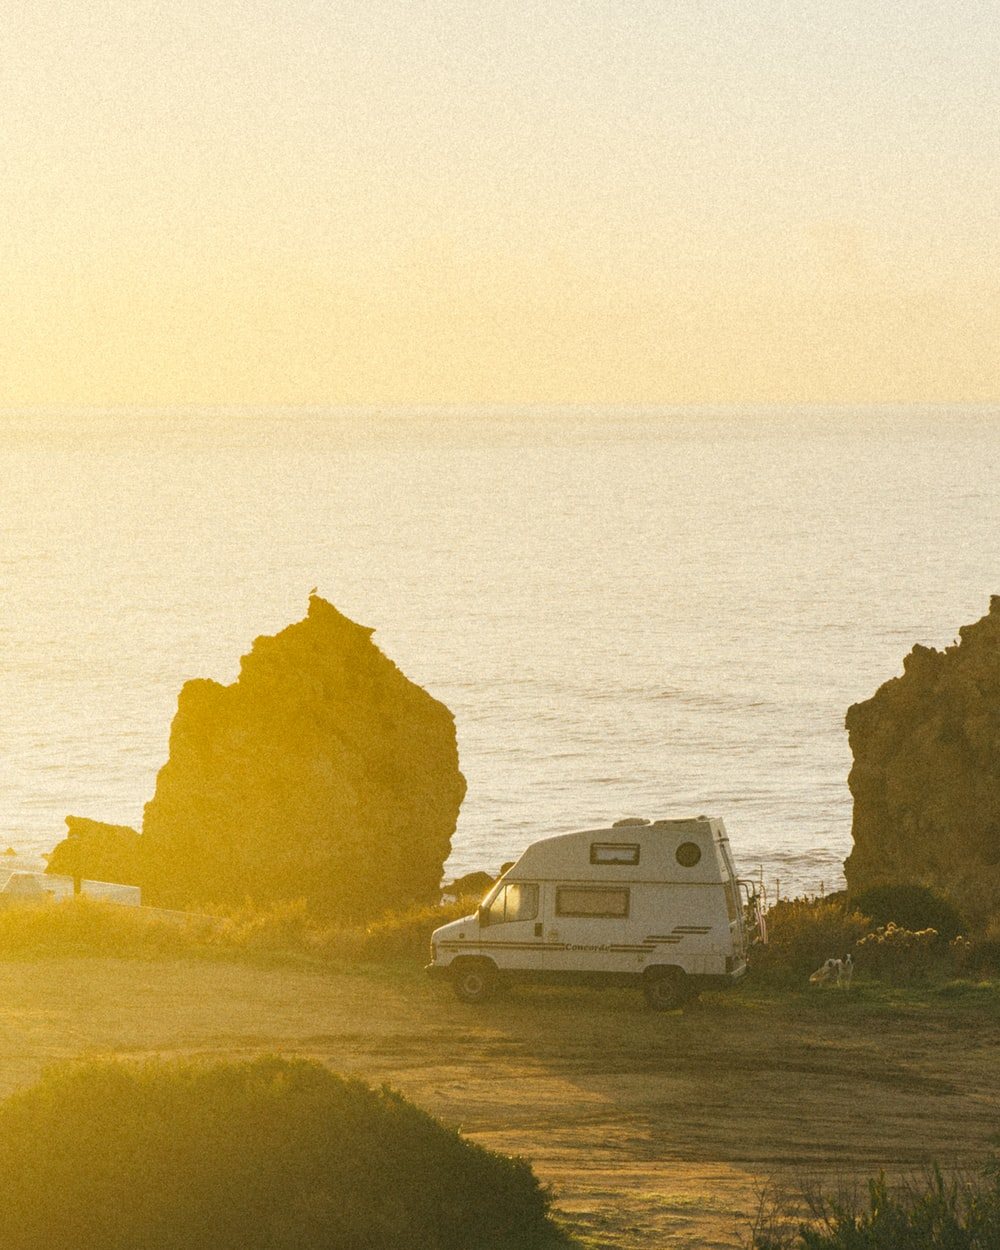 white motorhome near cliff during daytime